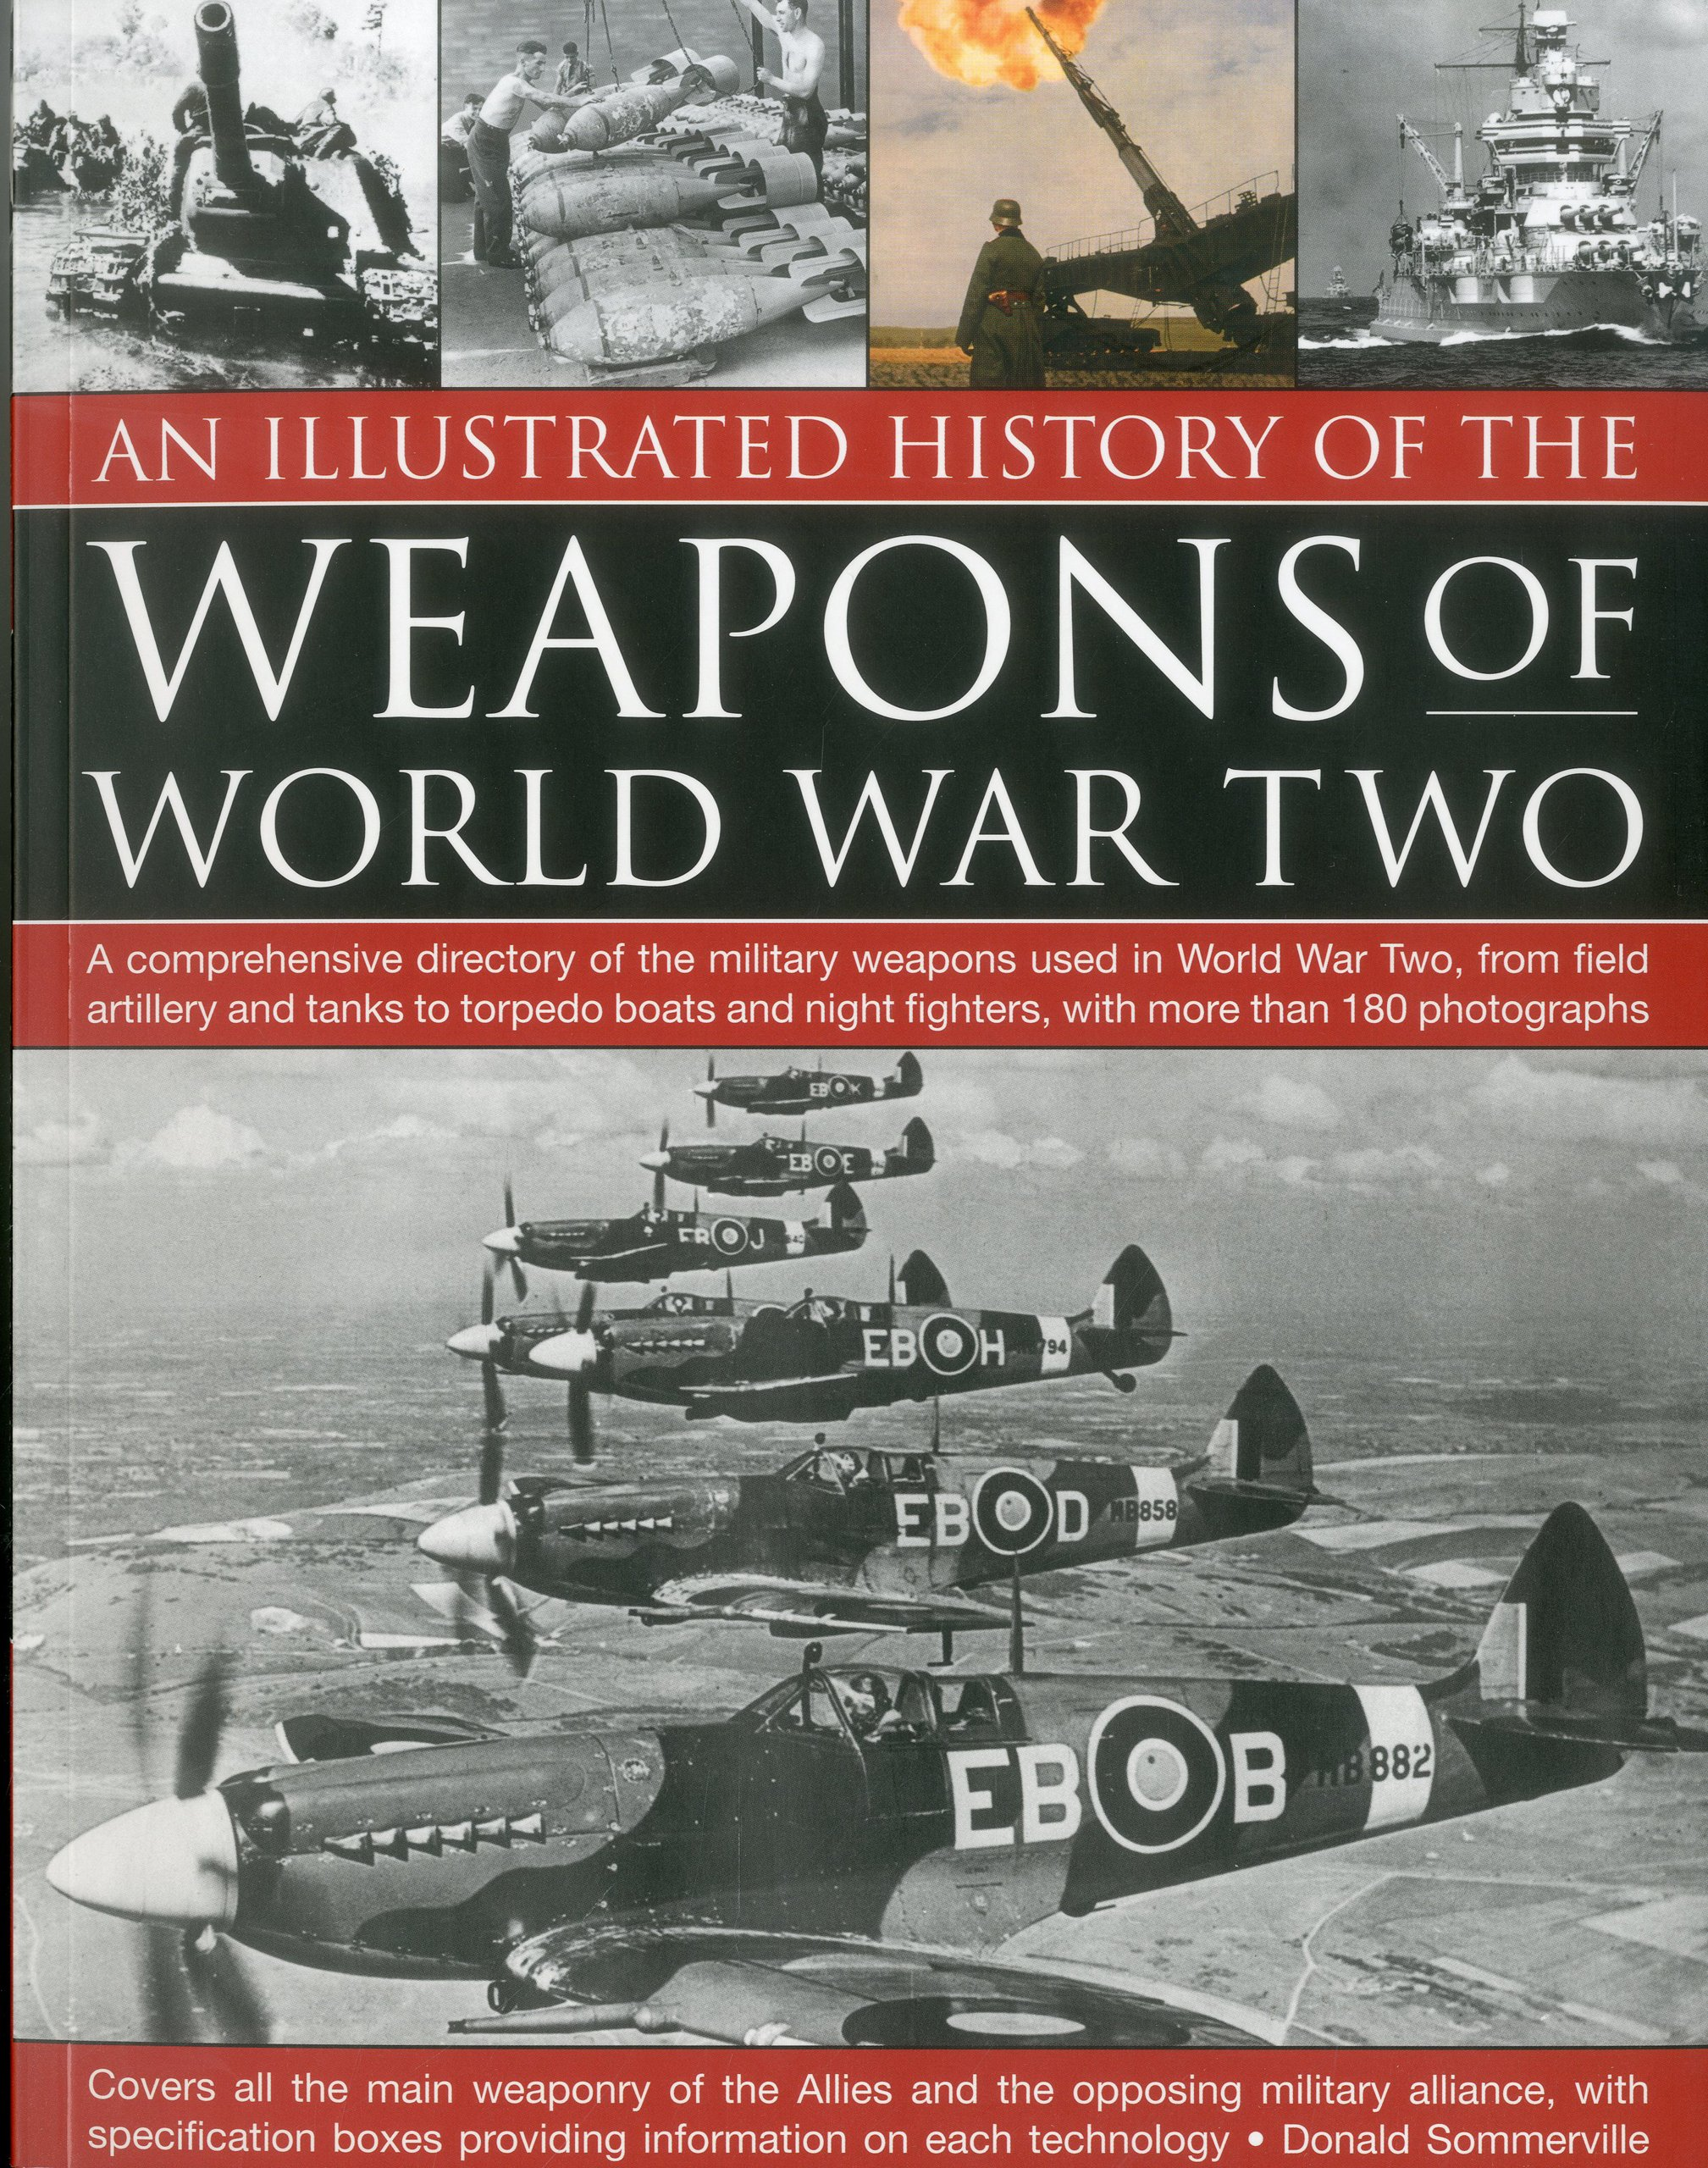 An Illustrated History of the Weapons of WWII A prehensive